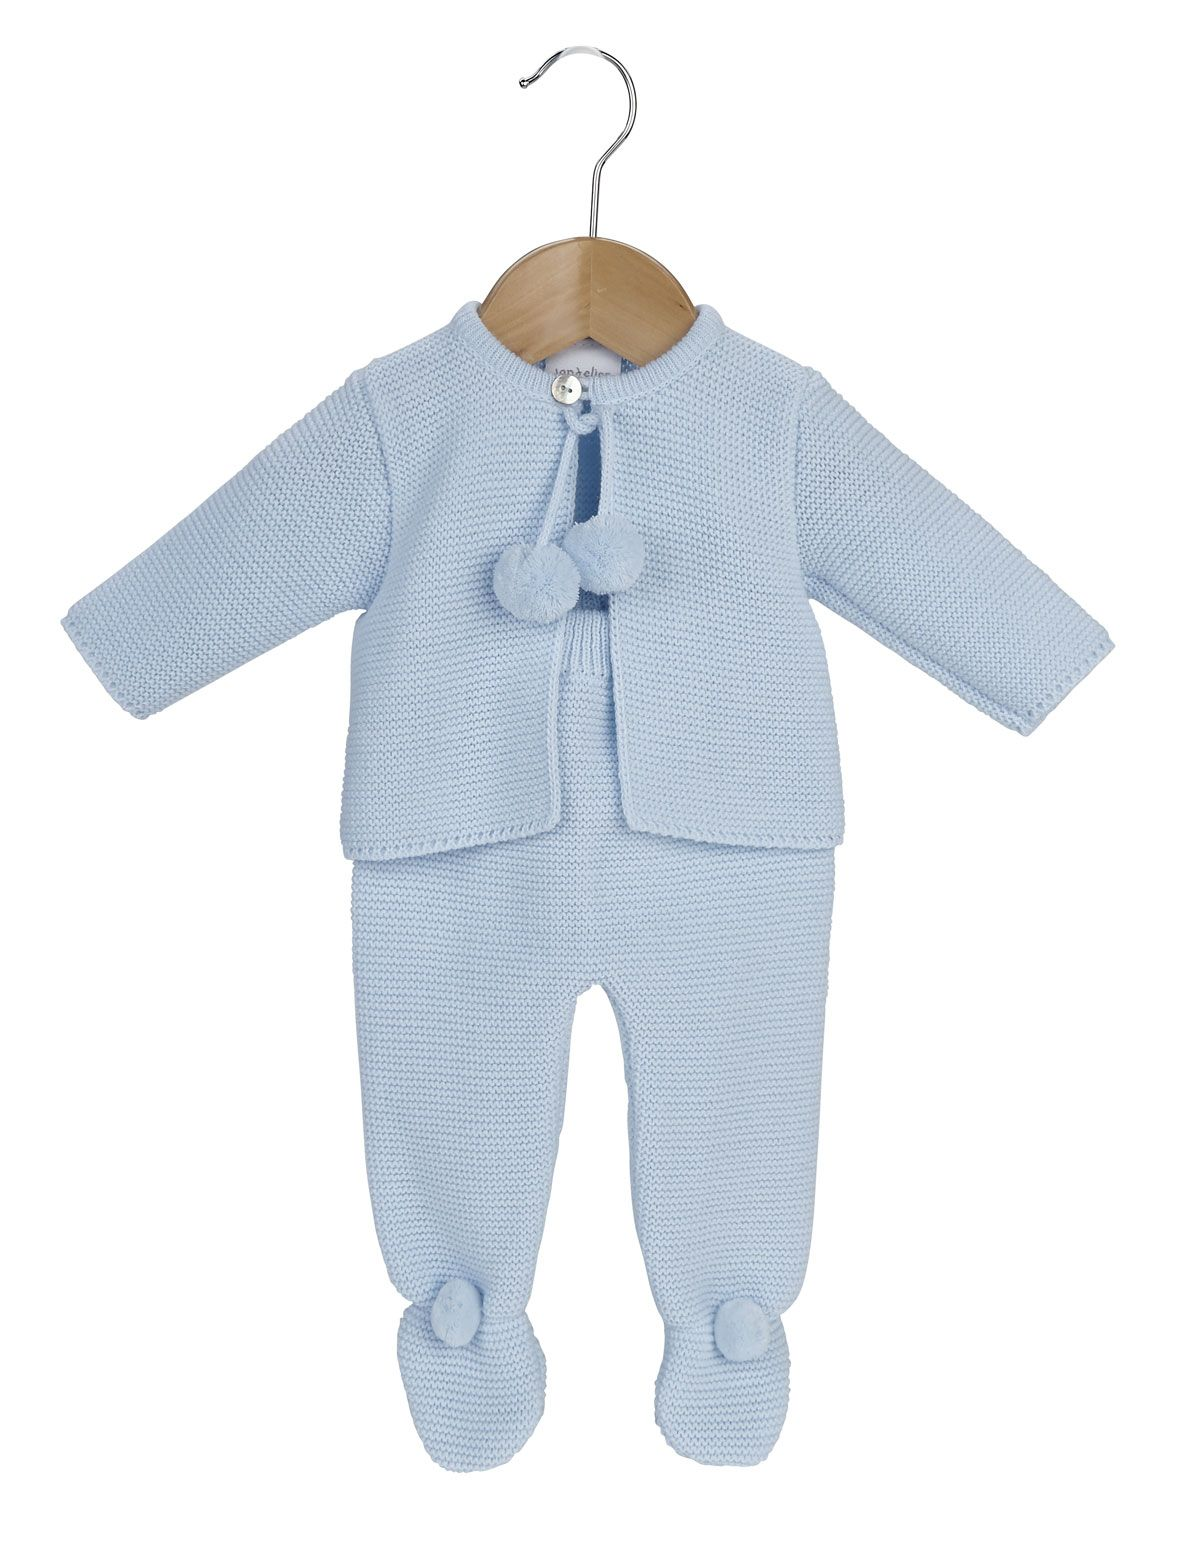 d3b6ecf4abf1 A2563 Pom Pom knitted Jacket   Trousers P